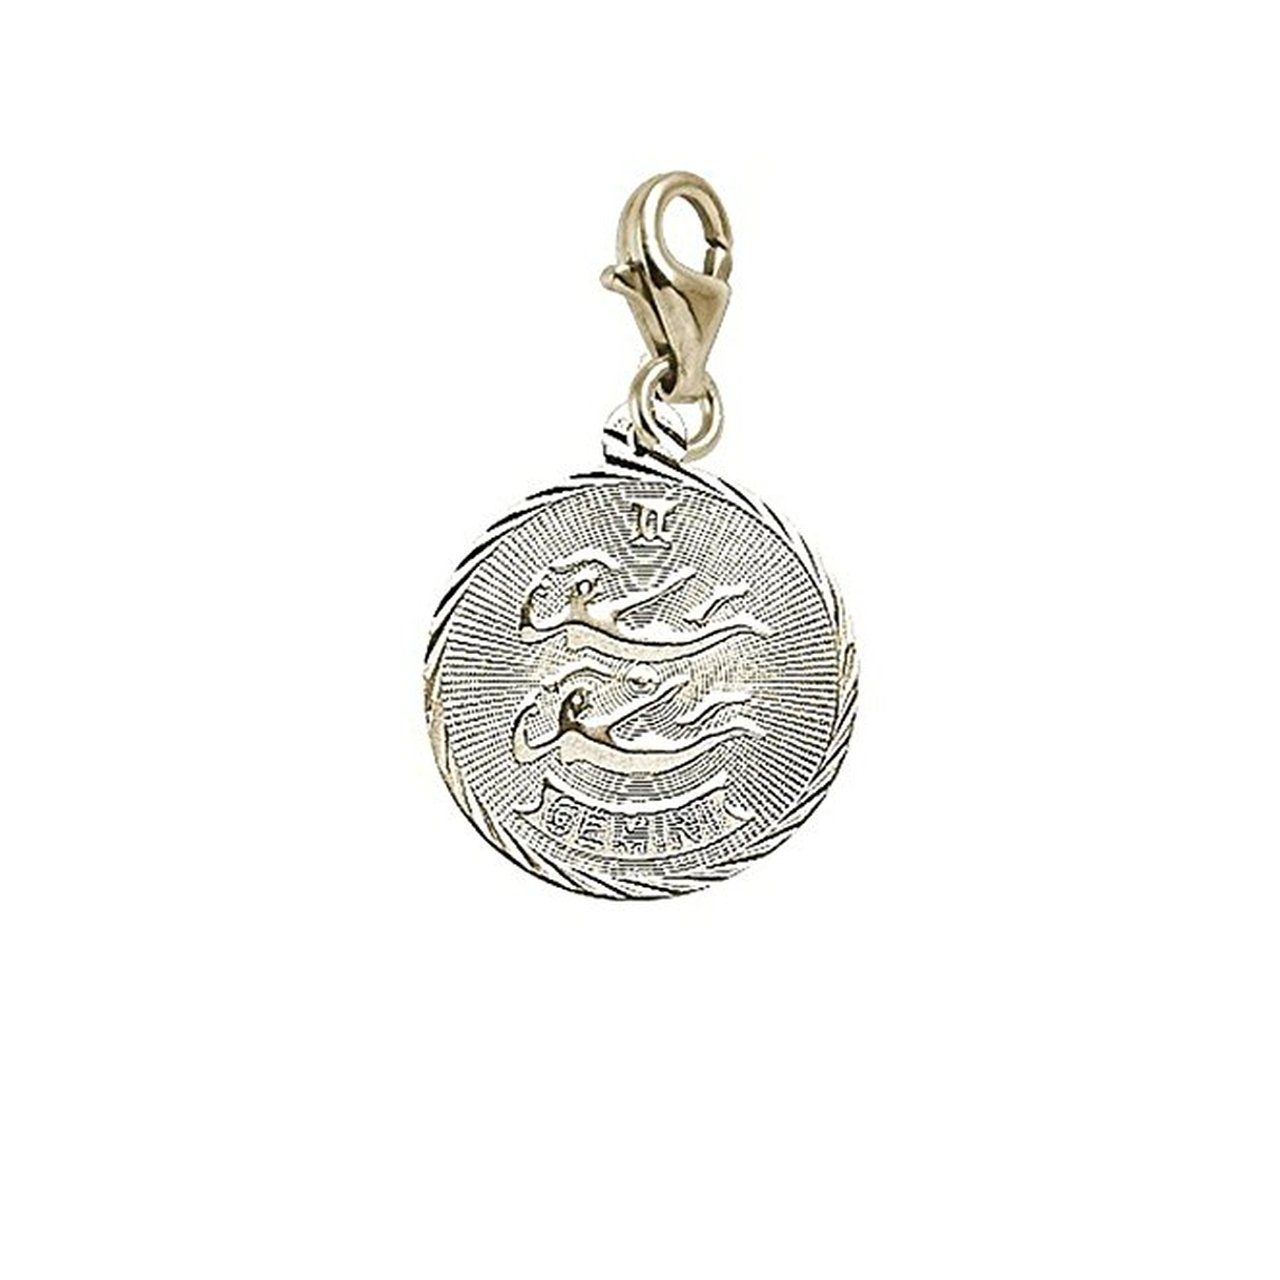 Charms for Bracelets and Necklaces 10k Yellow Gold Gemini Charm With Lobster Claw Clasp